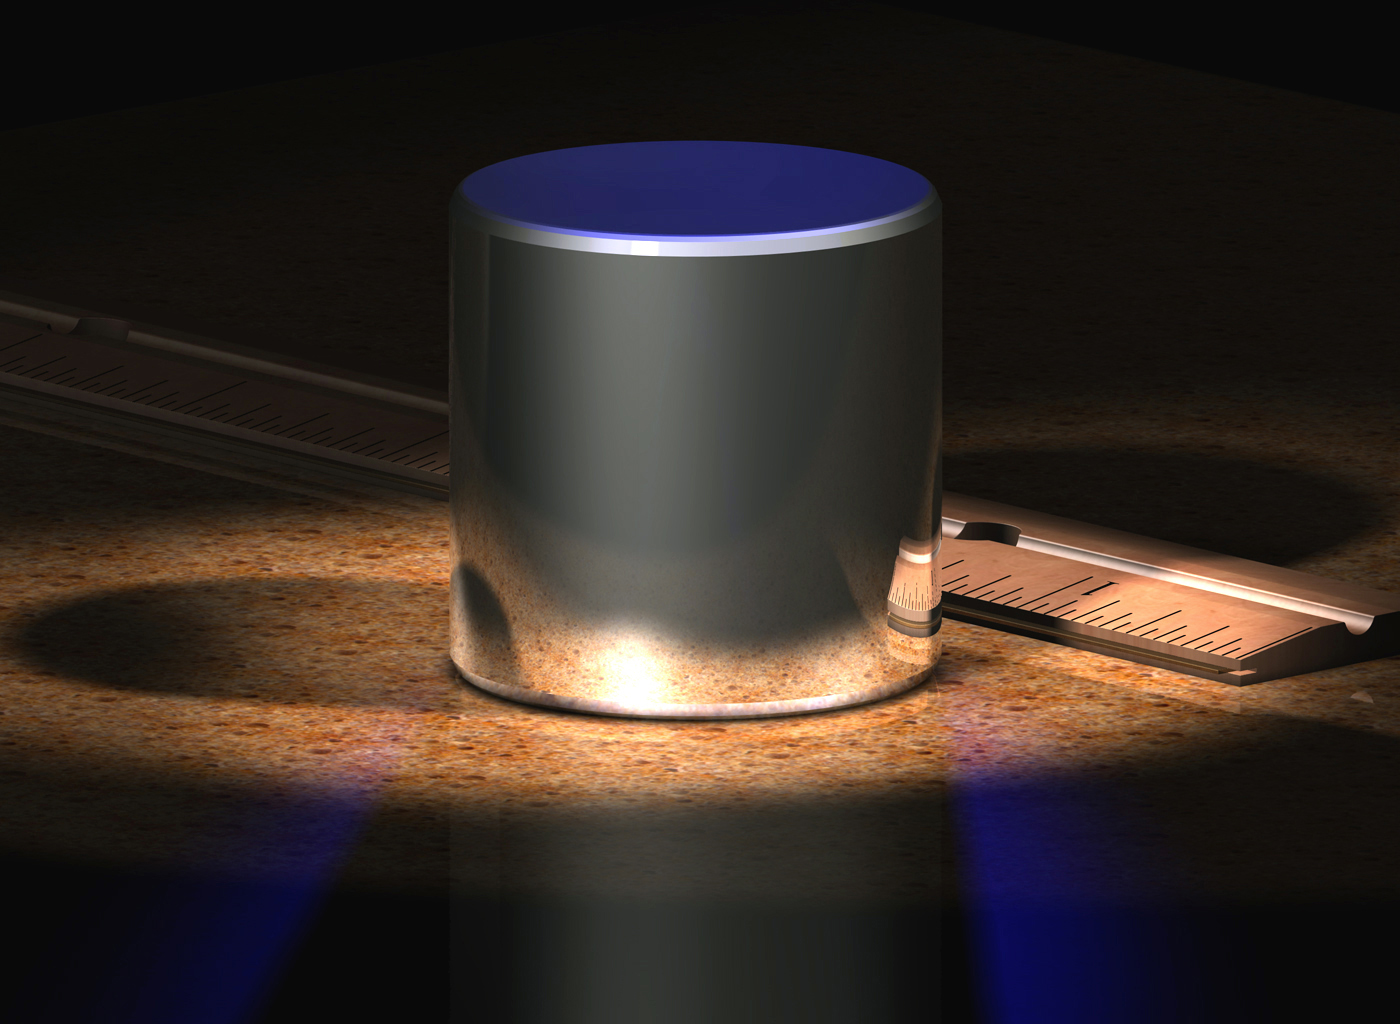 CG image of The Kilogram, CC BY-SA Wiki user Greg L